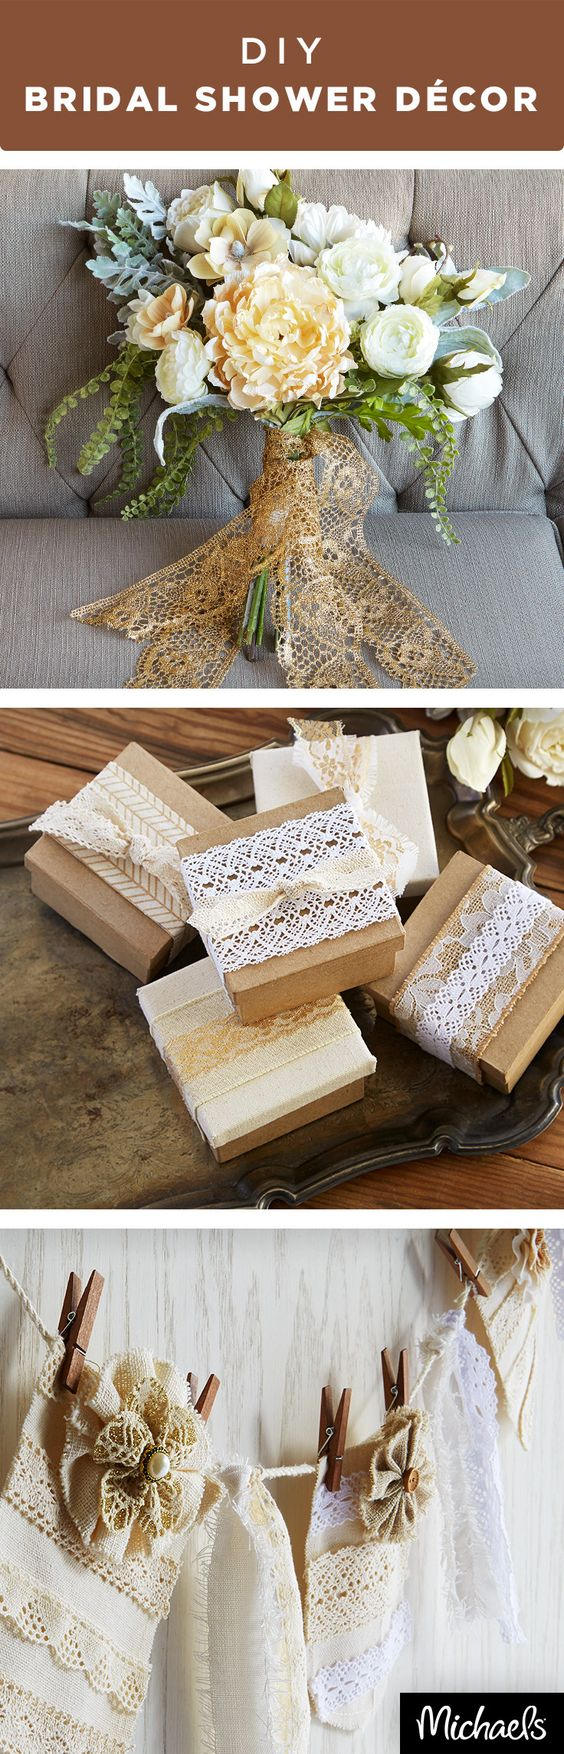 Use burlap and lace to create sweet bridal shower décor ...